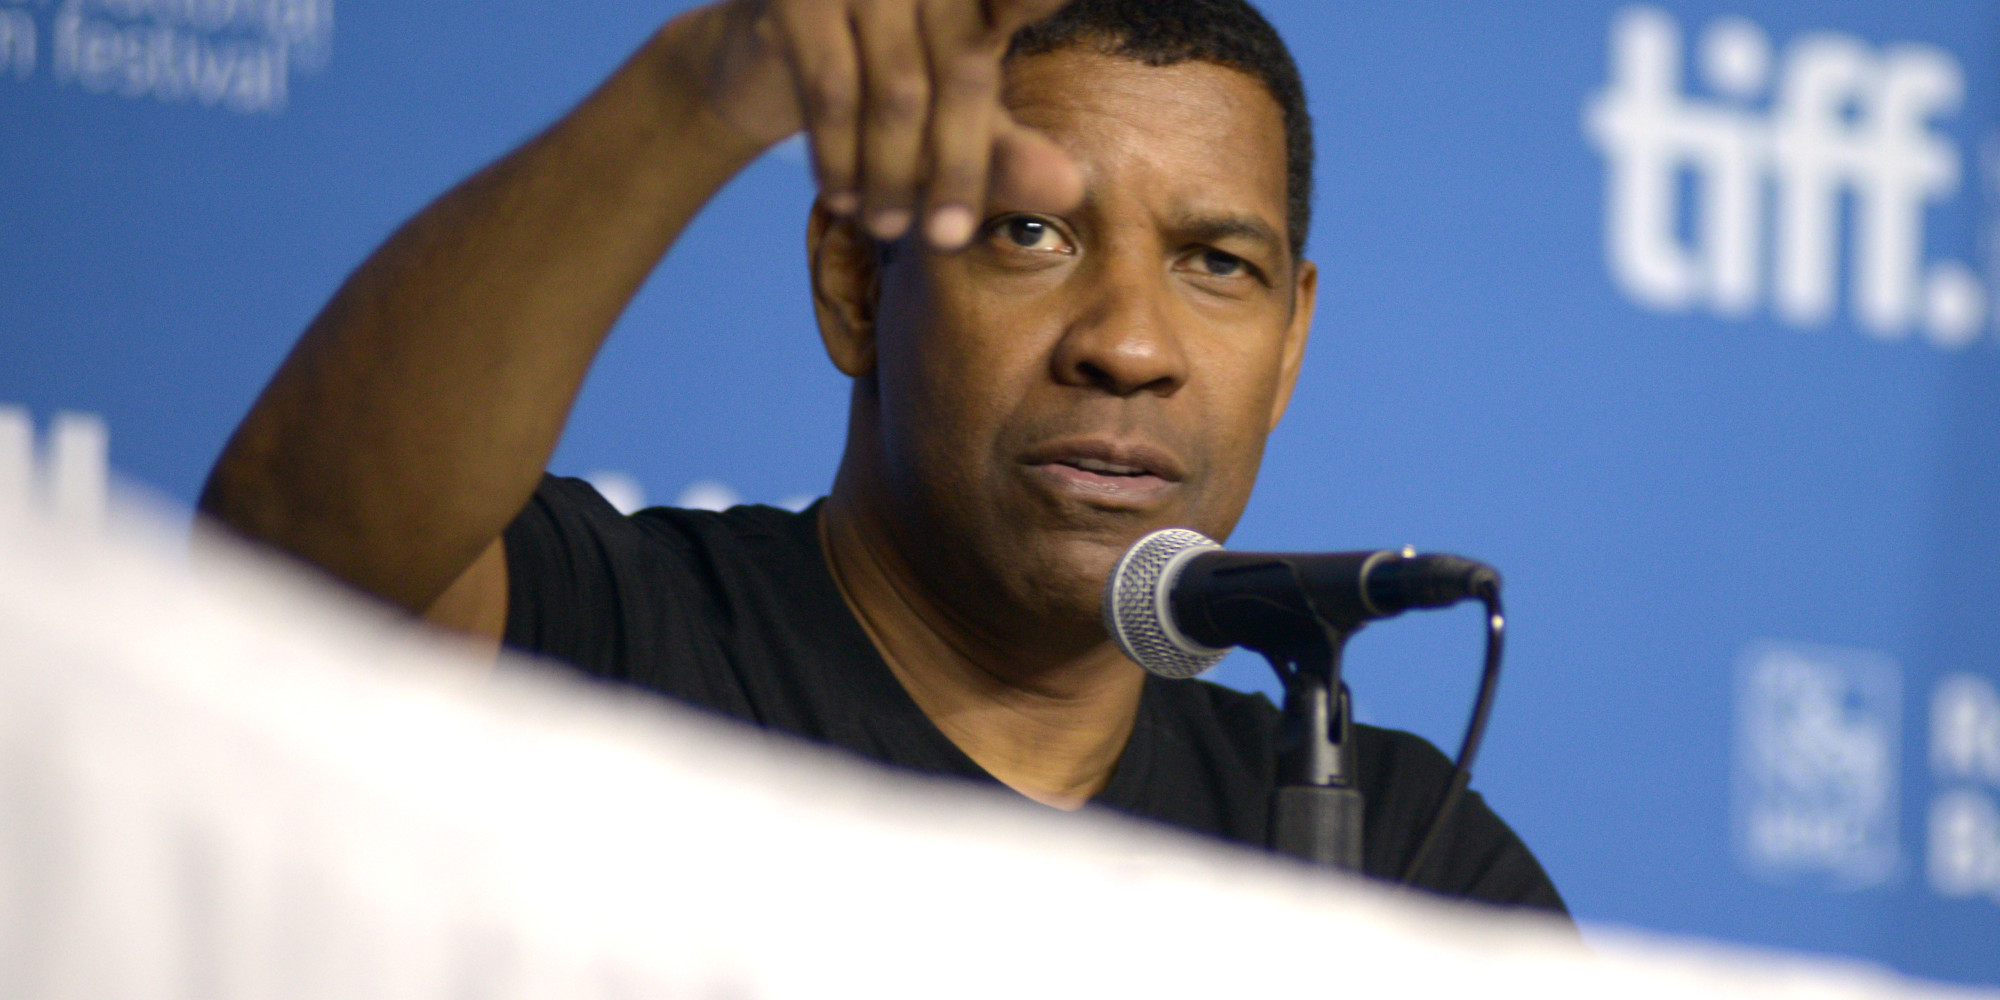 denzel washington son